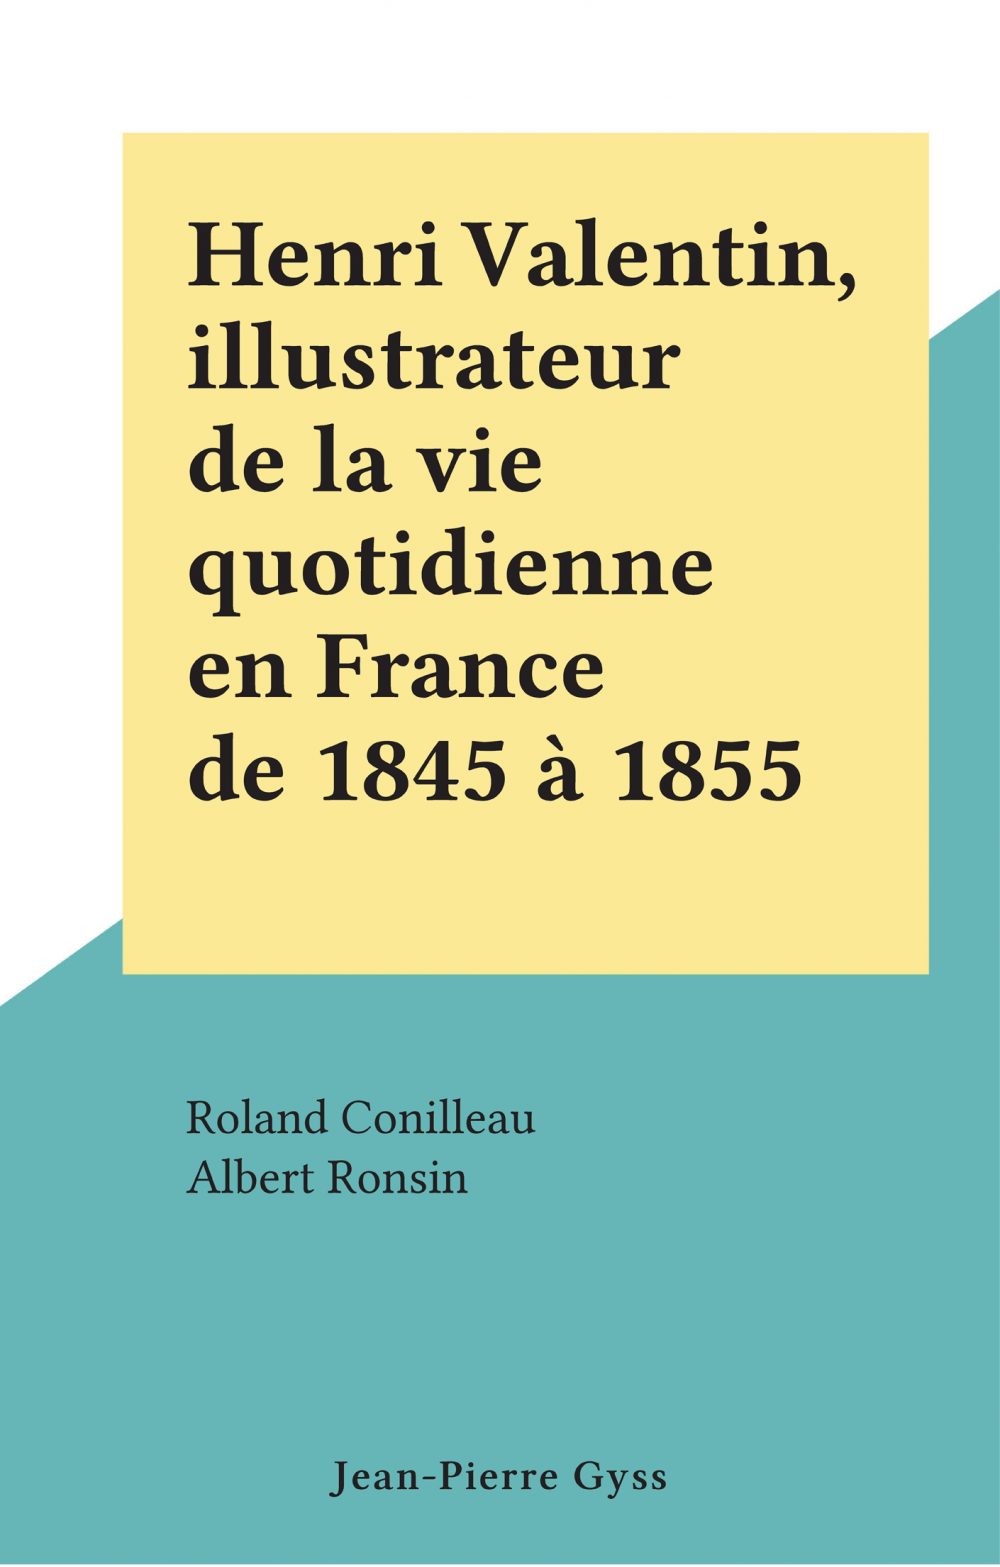 Henri Valentin, illustrateur de la vie quotidienne en France de 1845 à 1855